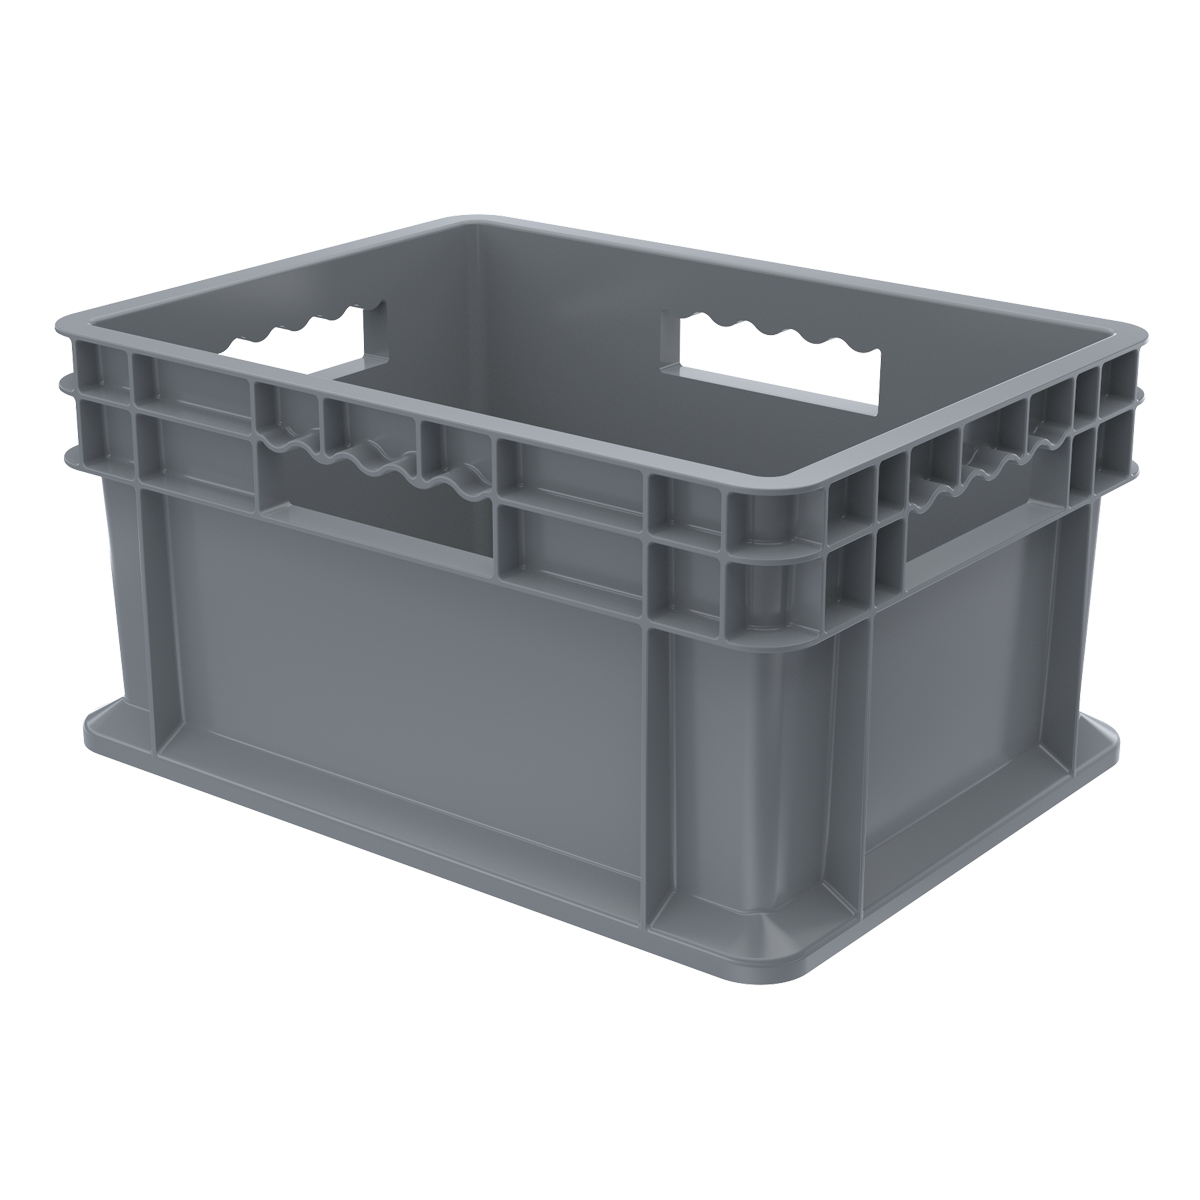 Straight Wall Container, Solid 15-3/4 x 11-3/4 x 8-1/4, Gray (37288GREY).  This item sold in carton quantities of 12.